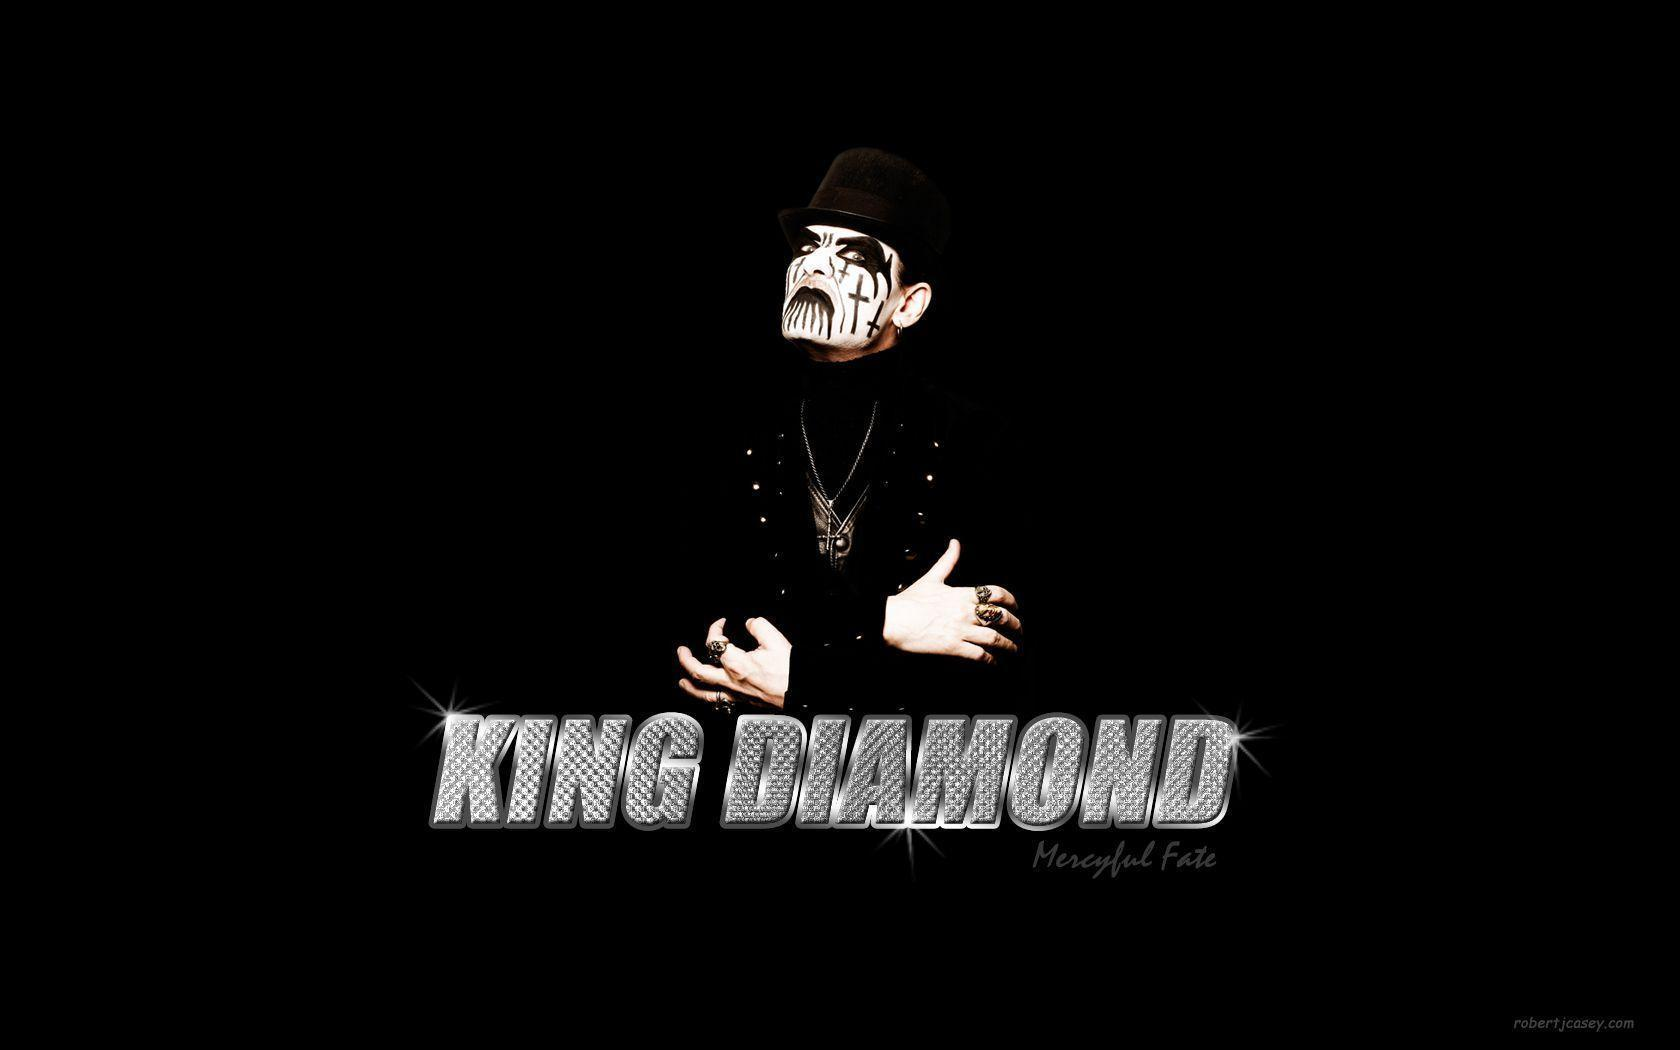 King Diamond Computer Wallpapers Desktop Backgrounds 1680x1050 Id